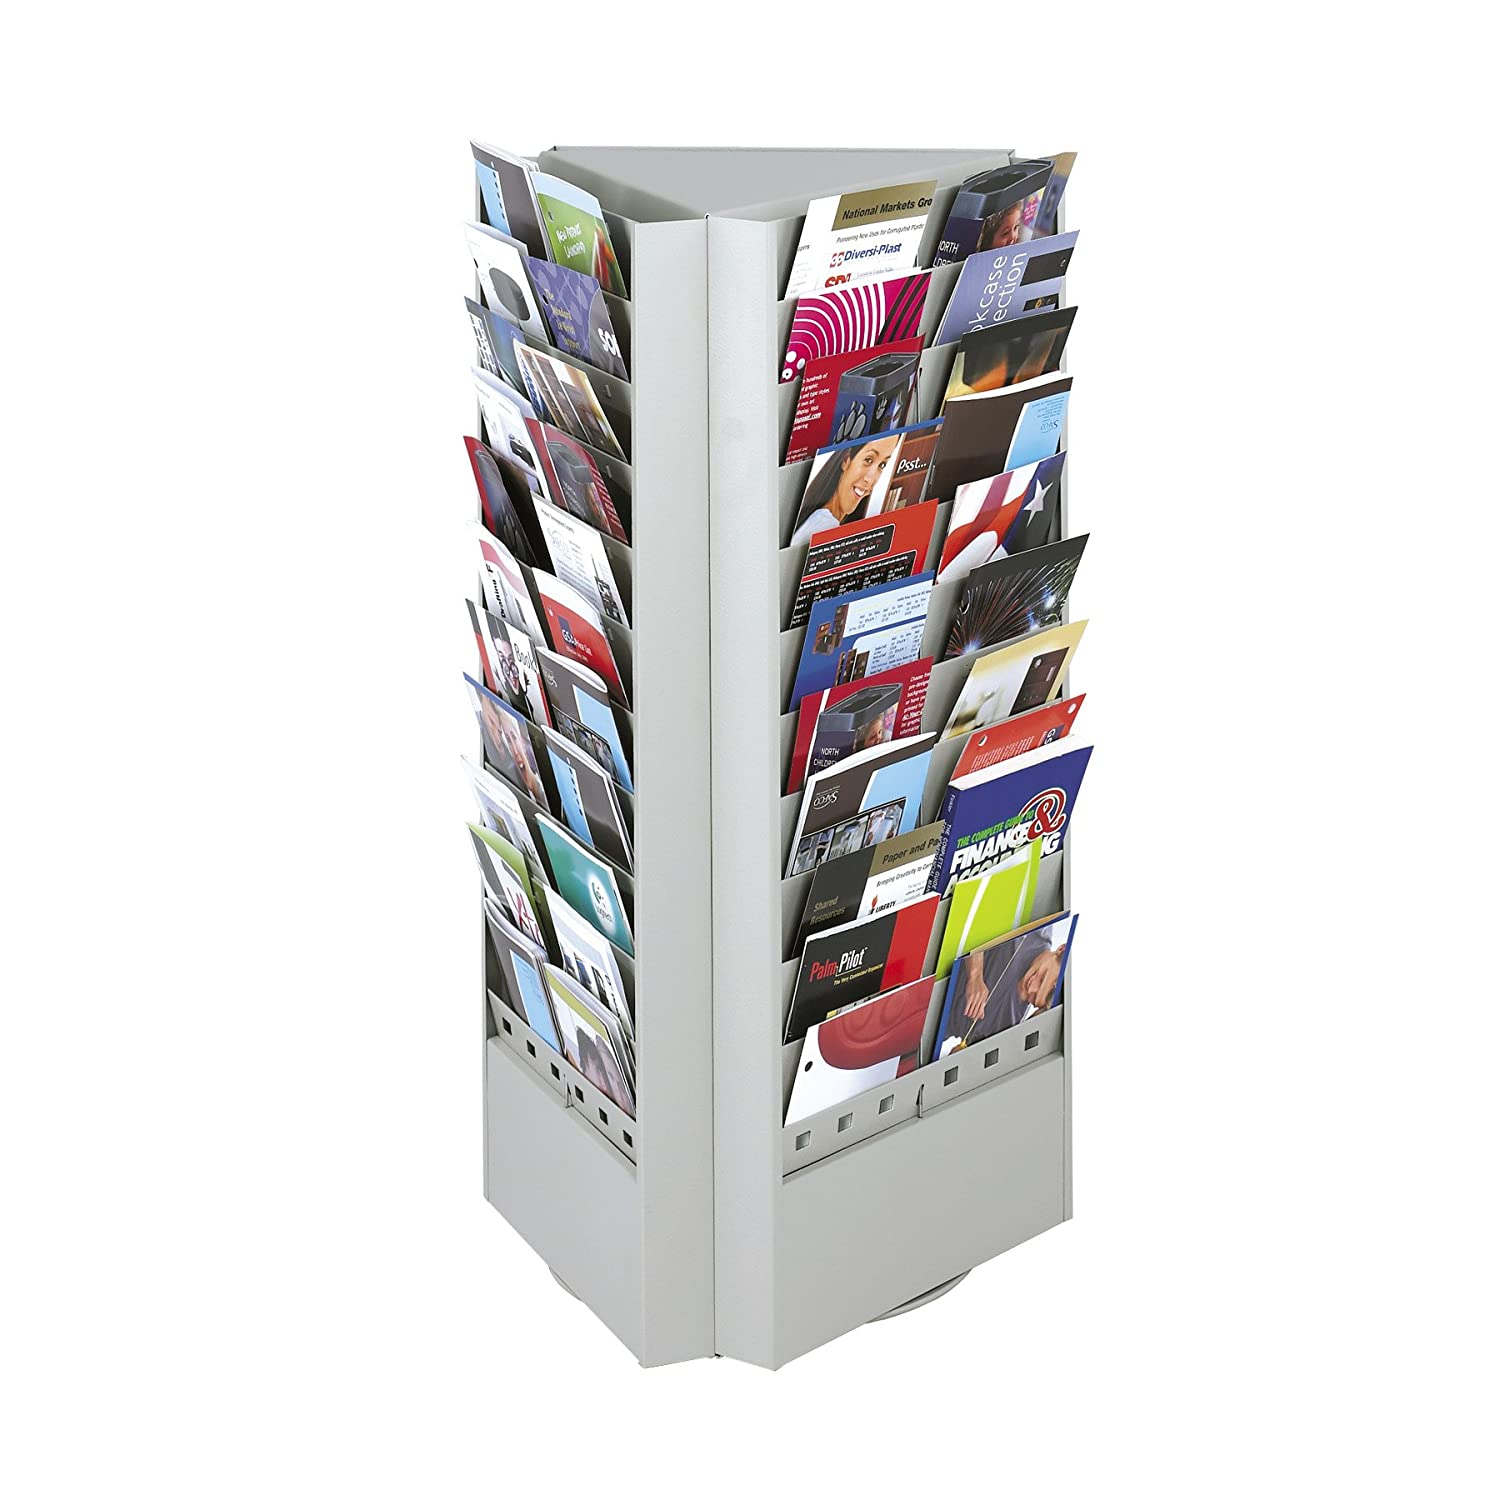 Steel Rotary Brochure Rack, 33 Compartments, 17-1/4w x 15d x 30-1/4h, Gray, Sold as 1 Each